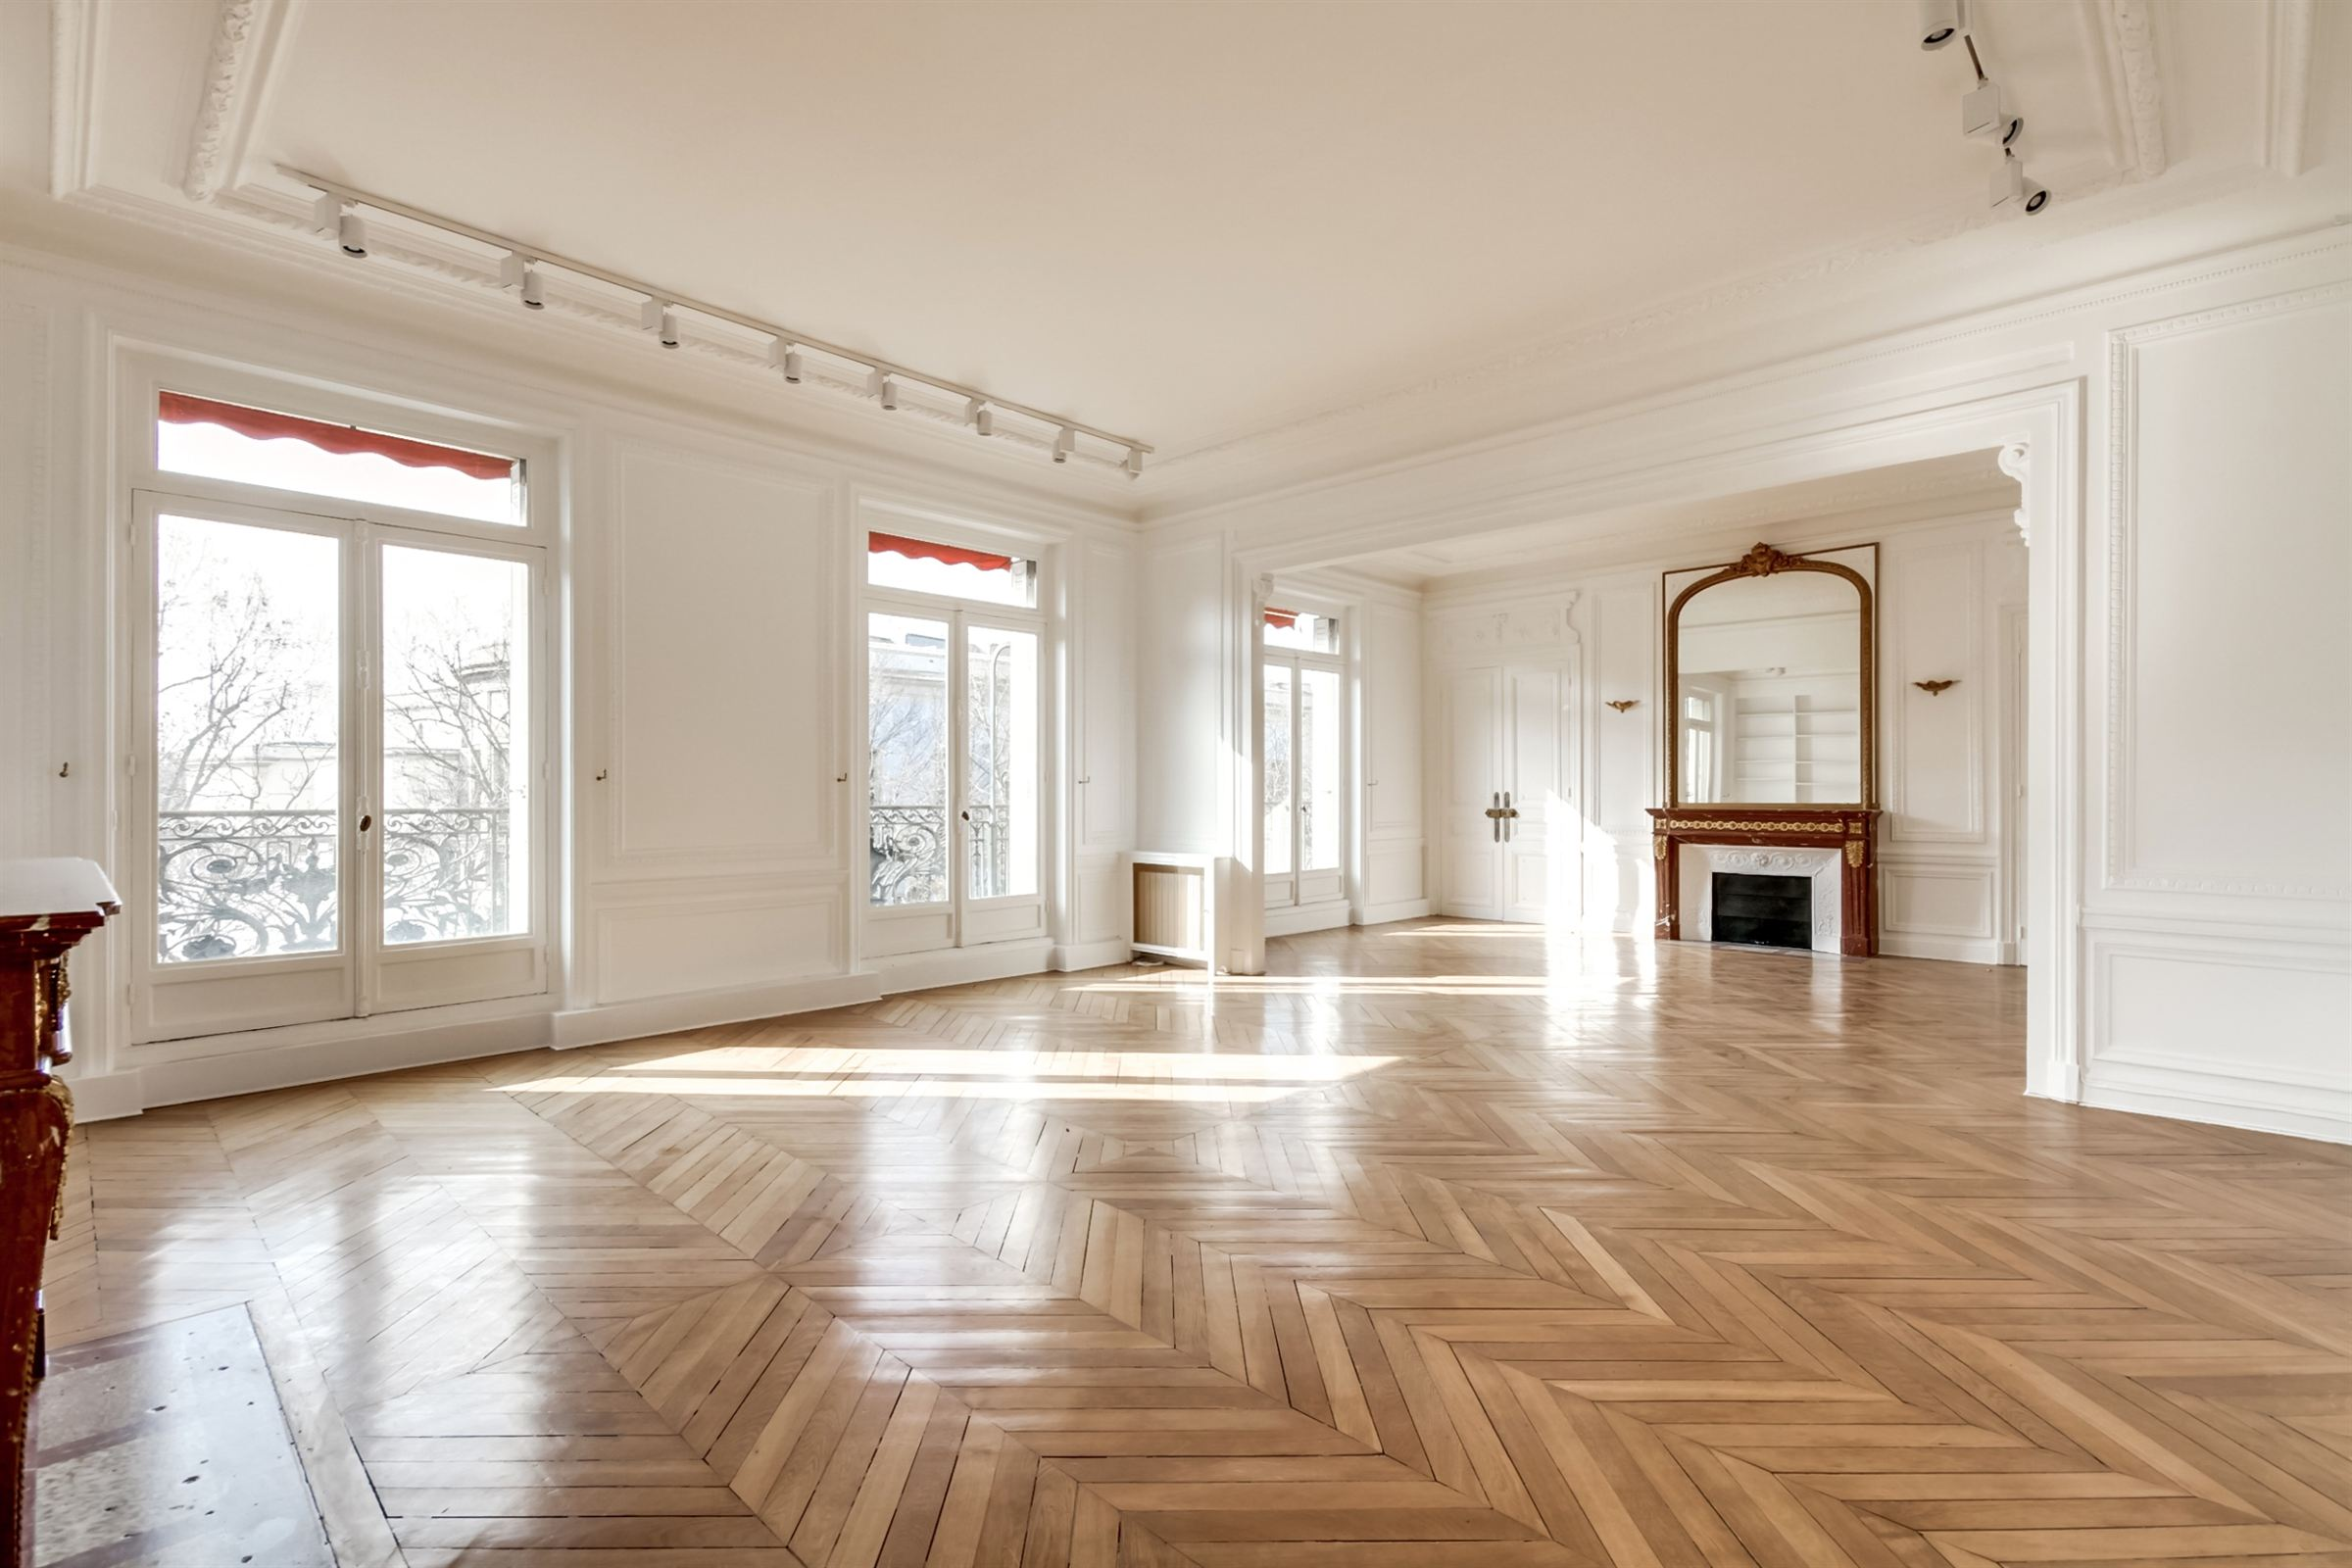 sales property at For sale apartment with Eiffel Tower view in Paris 16 - Galliera Museum